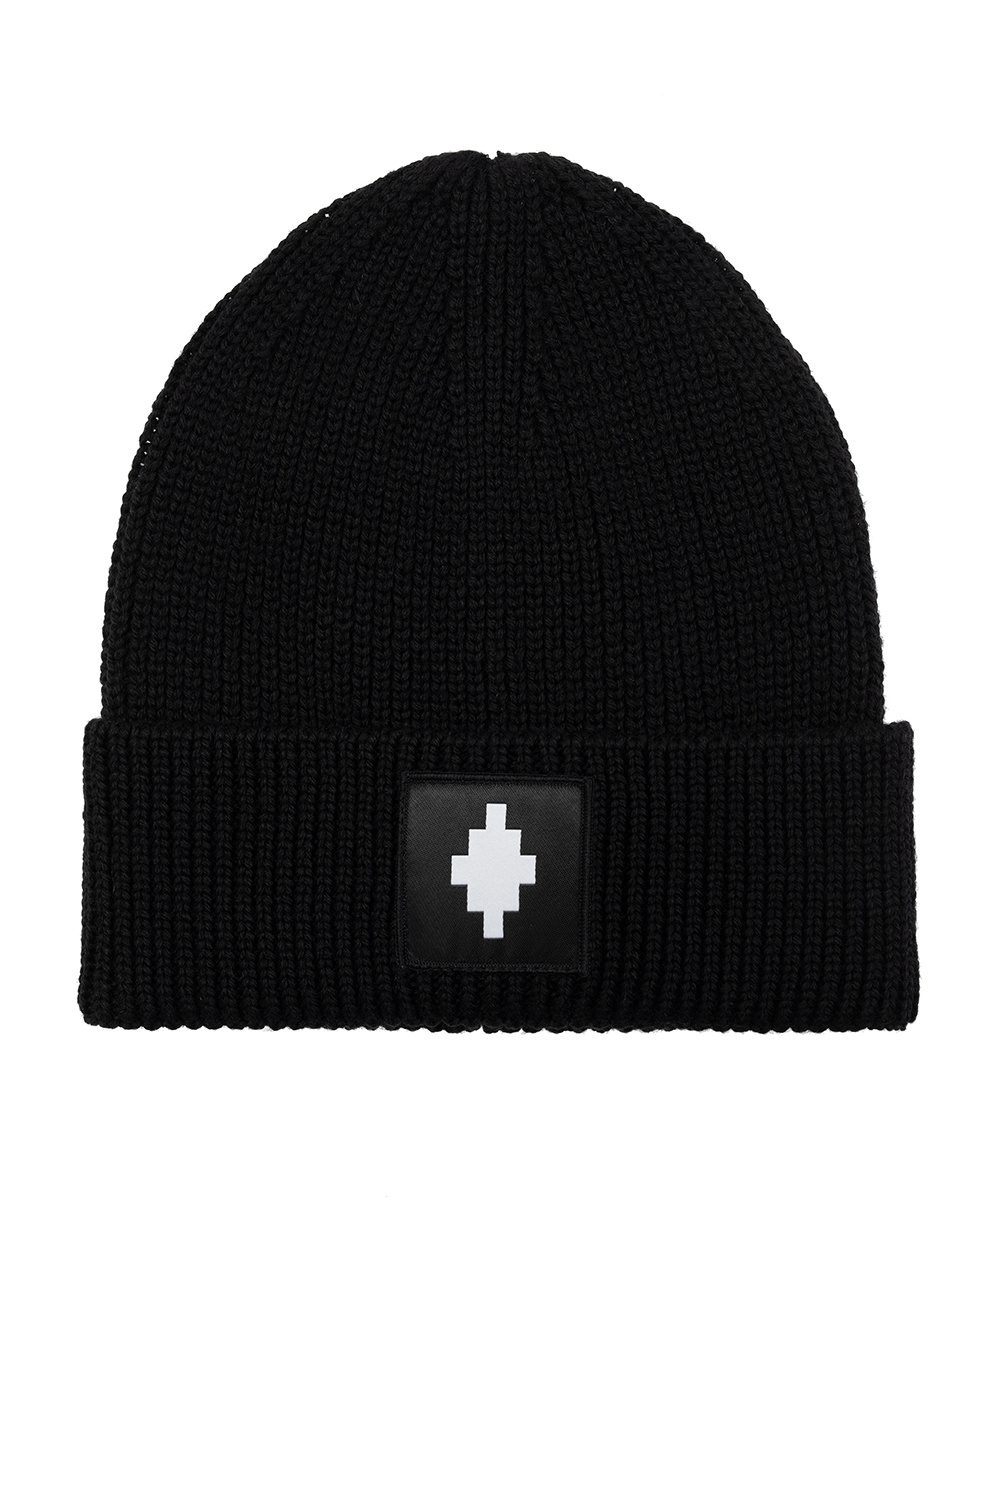 Marcelo Burlon Knitted hat with logo